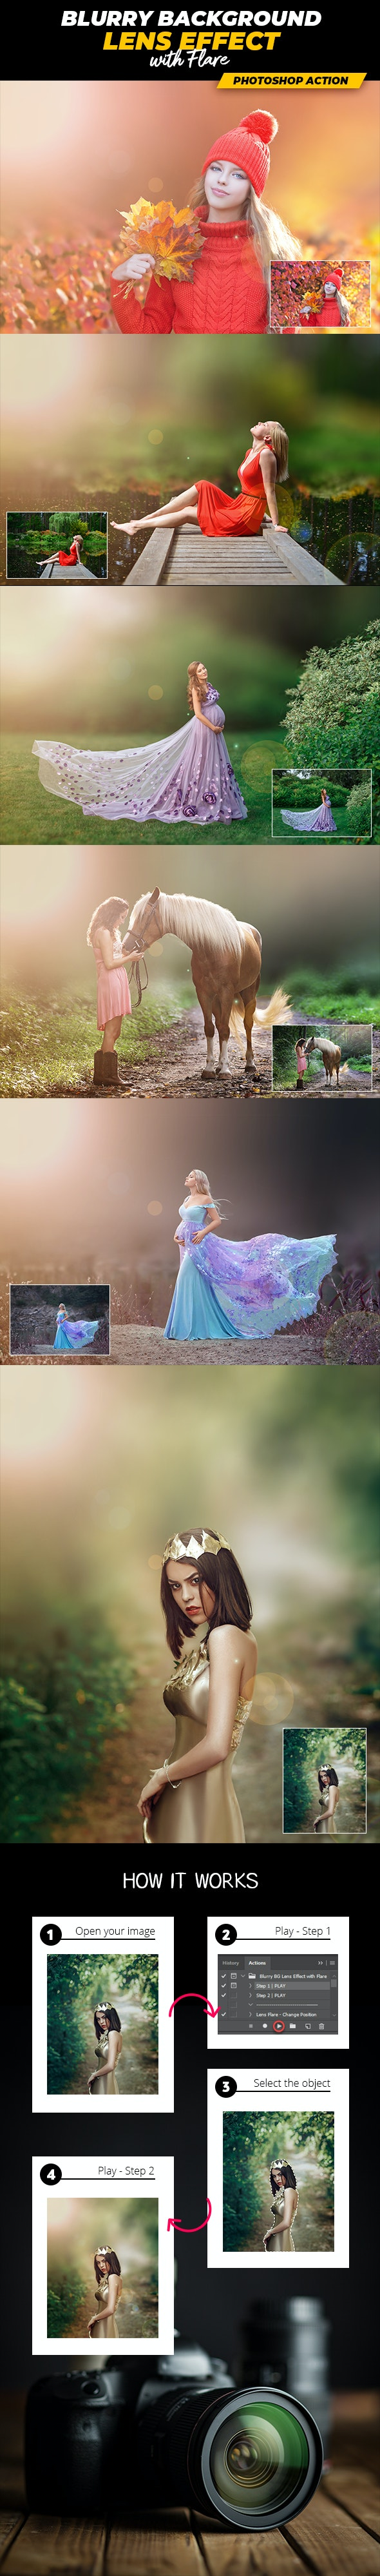 Blurry Background Lens Effect with Flare - Photoshop Action - Photo Effects Actions